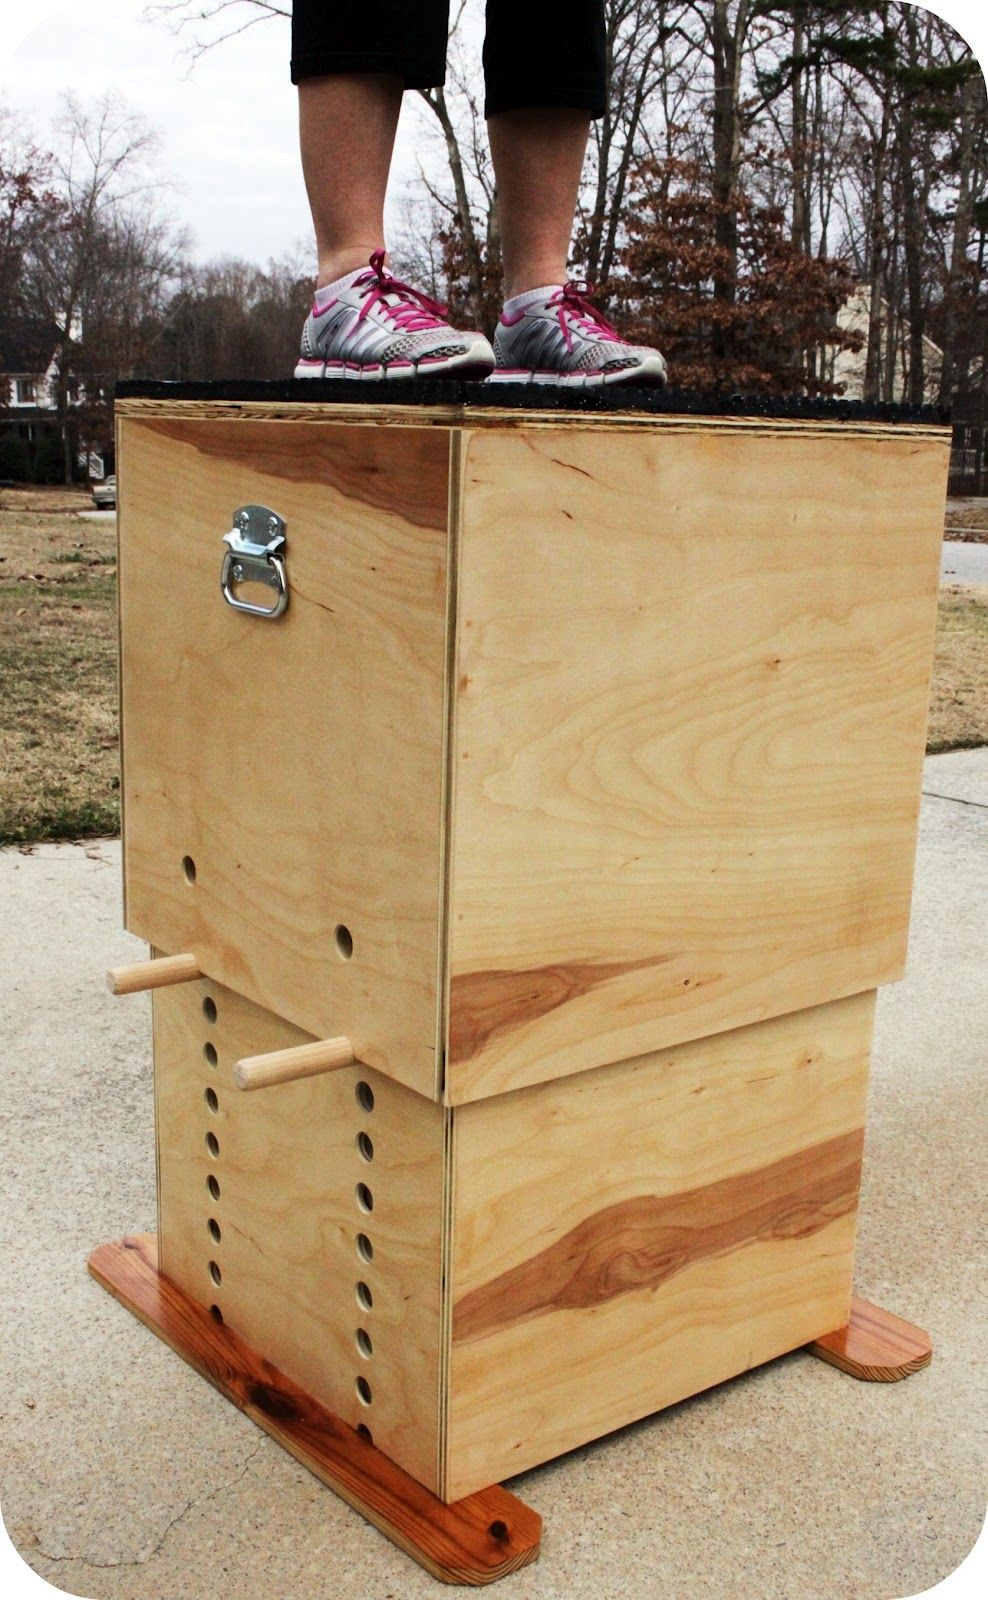 Trendytoolbox: adjustable wooden plyo box diy crossfit gym in